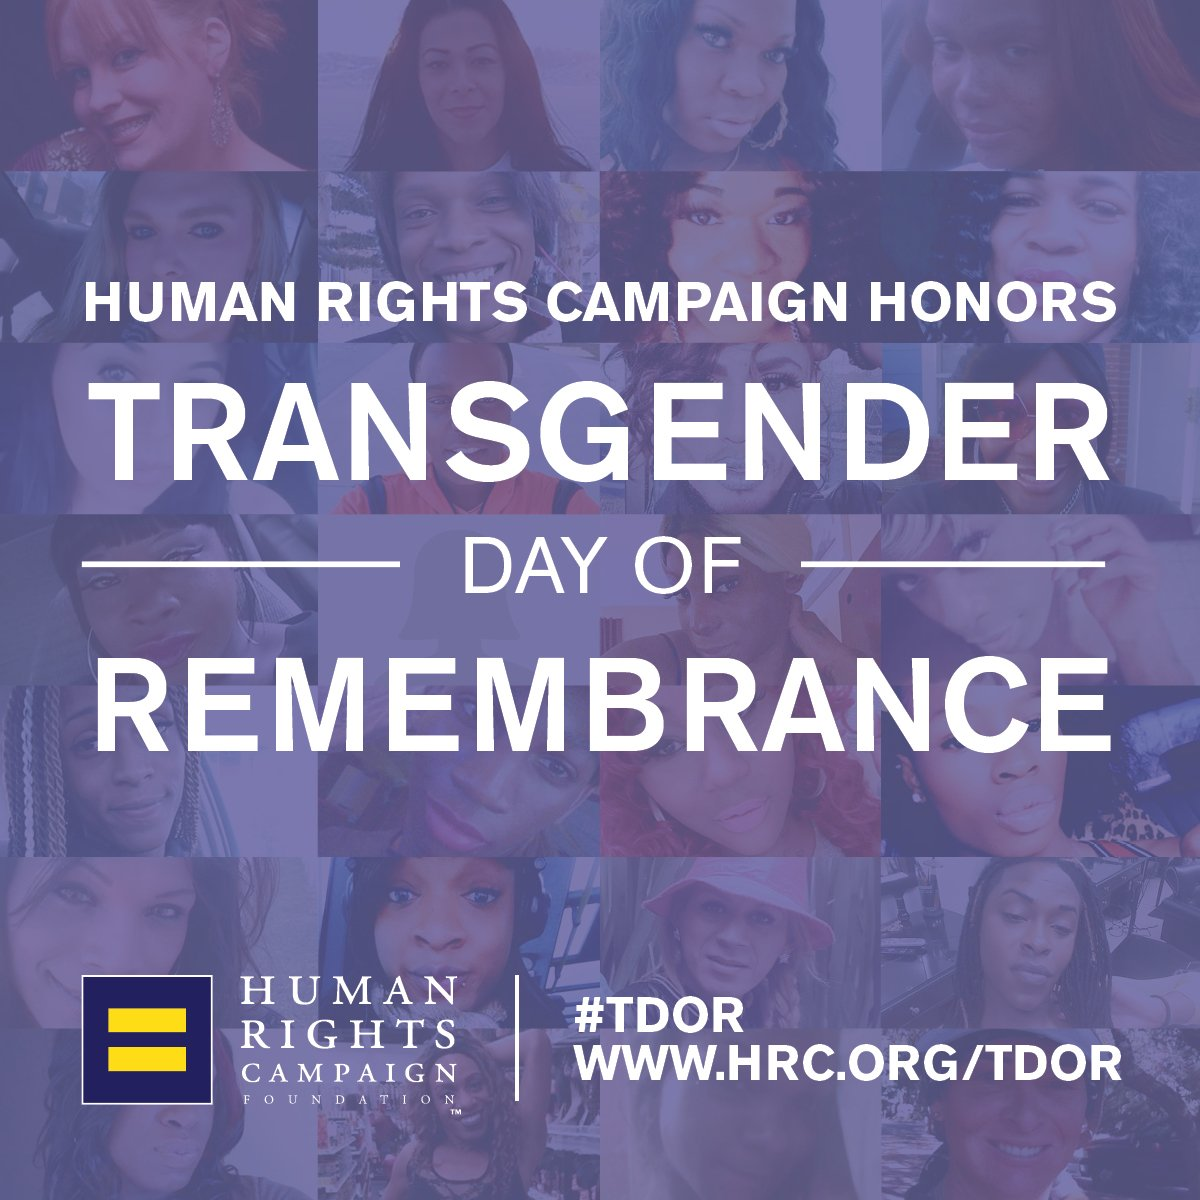 1/ Today is #TransDayOfRemembrance, a time to reflect and recommit to ending the epidemic of anti-trans violence.   Heartbreakingly, 2018 has seen at least 22 trans people killed by violent means -- the majority of whom were Black trans women. #TDOR https://t.co/lTZMLGJKVX